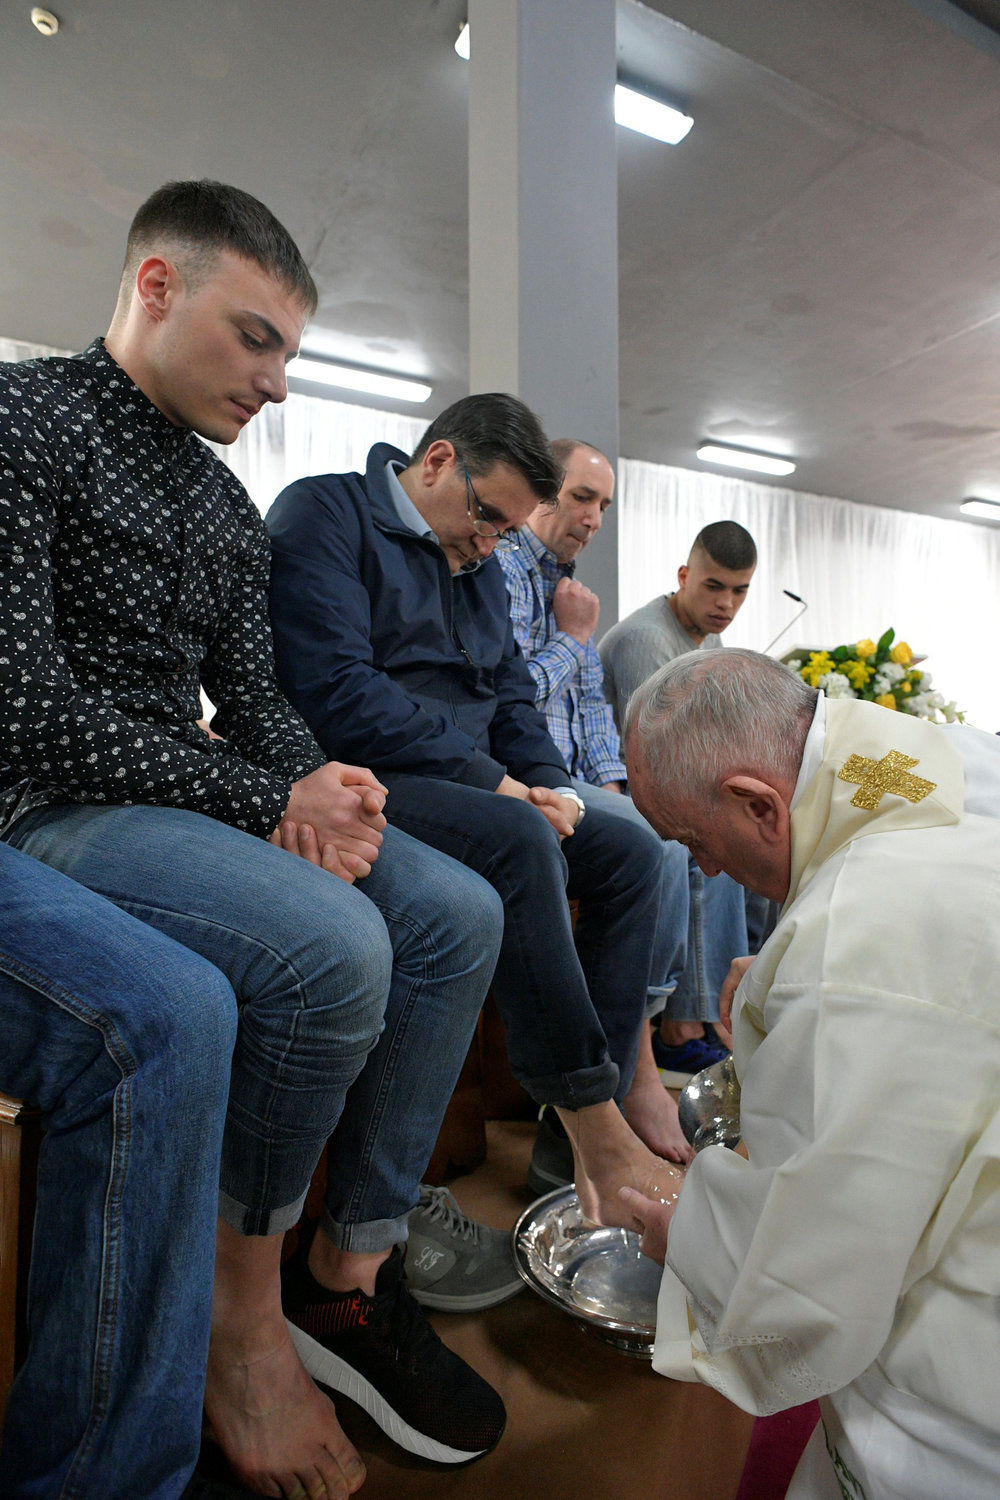 Pope Francis washes the feet of an inmate during a Holy Thursday celebration at Velletri Correctional Facility, 36 miles south of Rome.